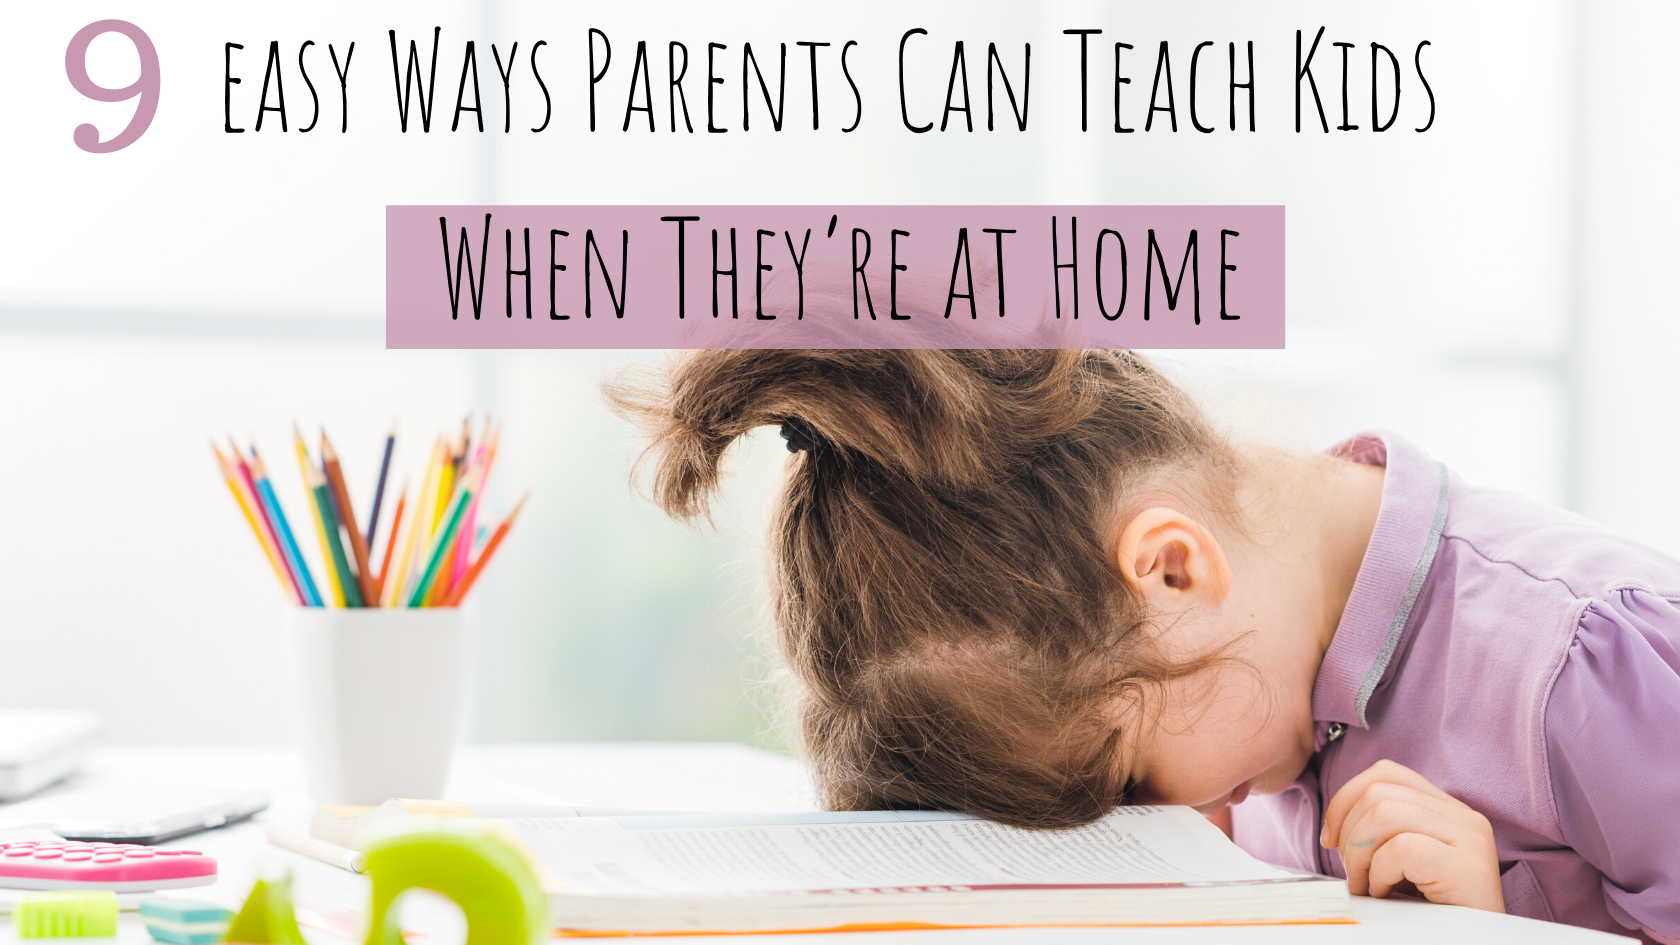 9 Easy Ways Parents Can Teach Kids When They're at Home